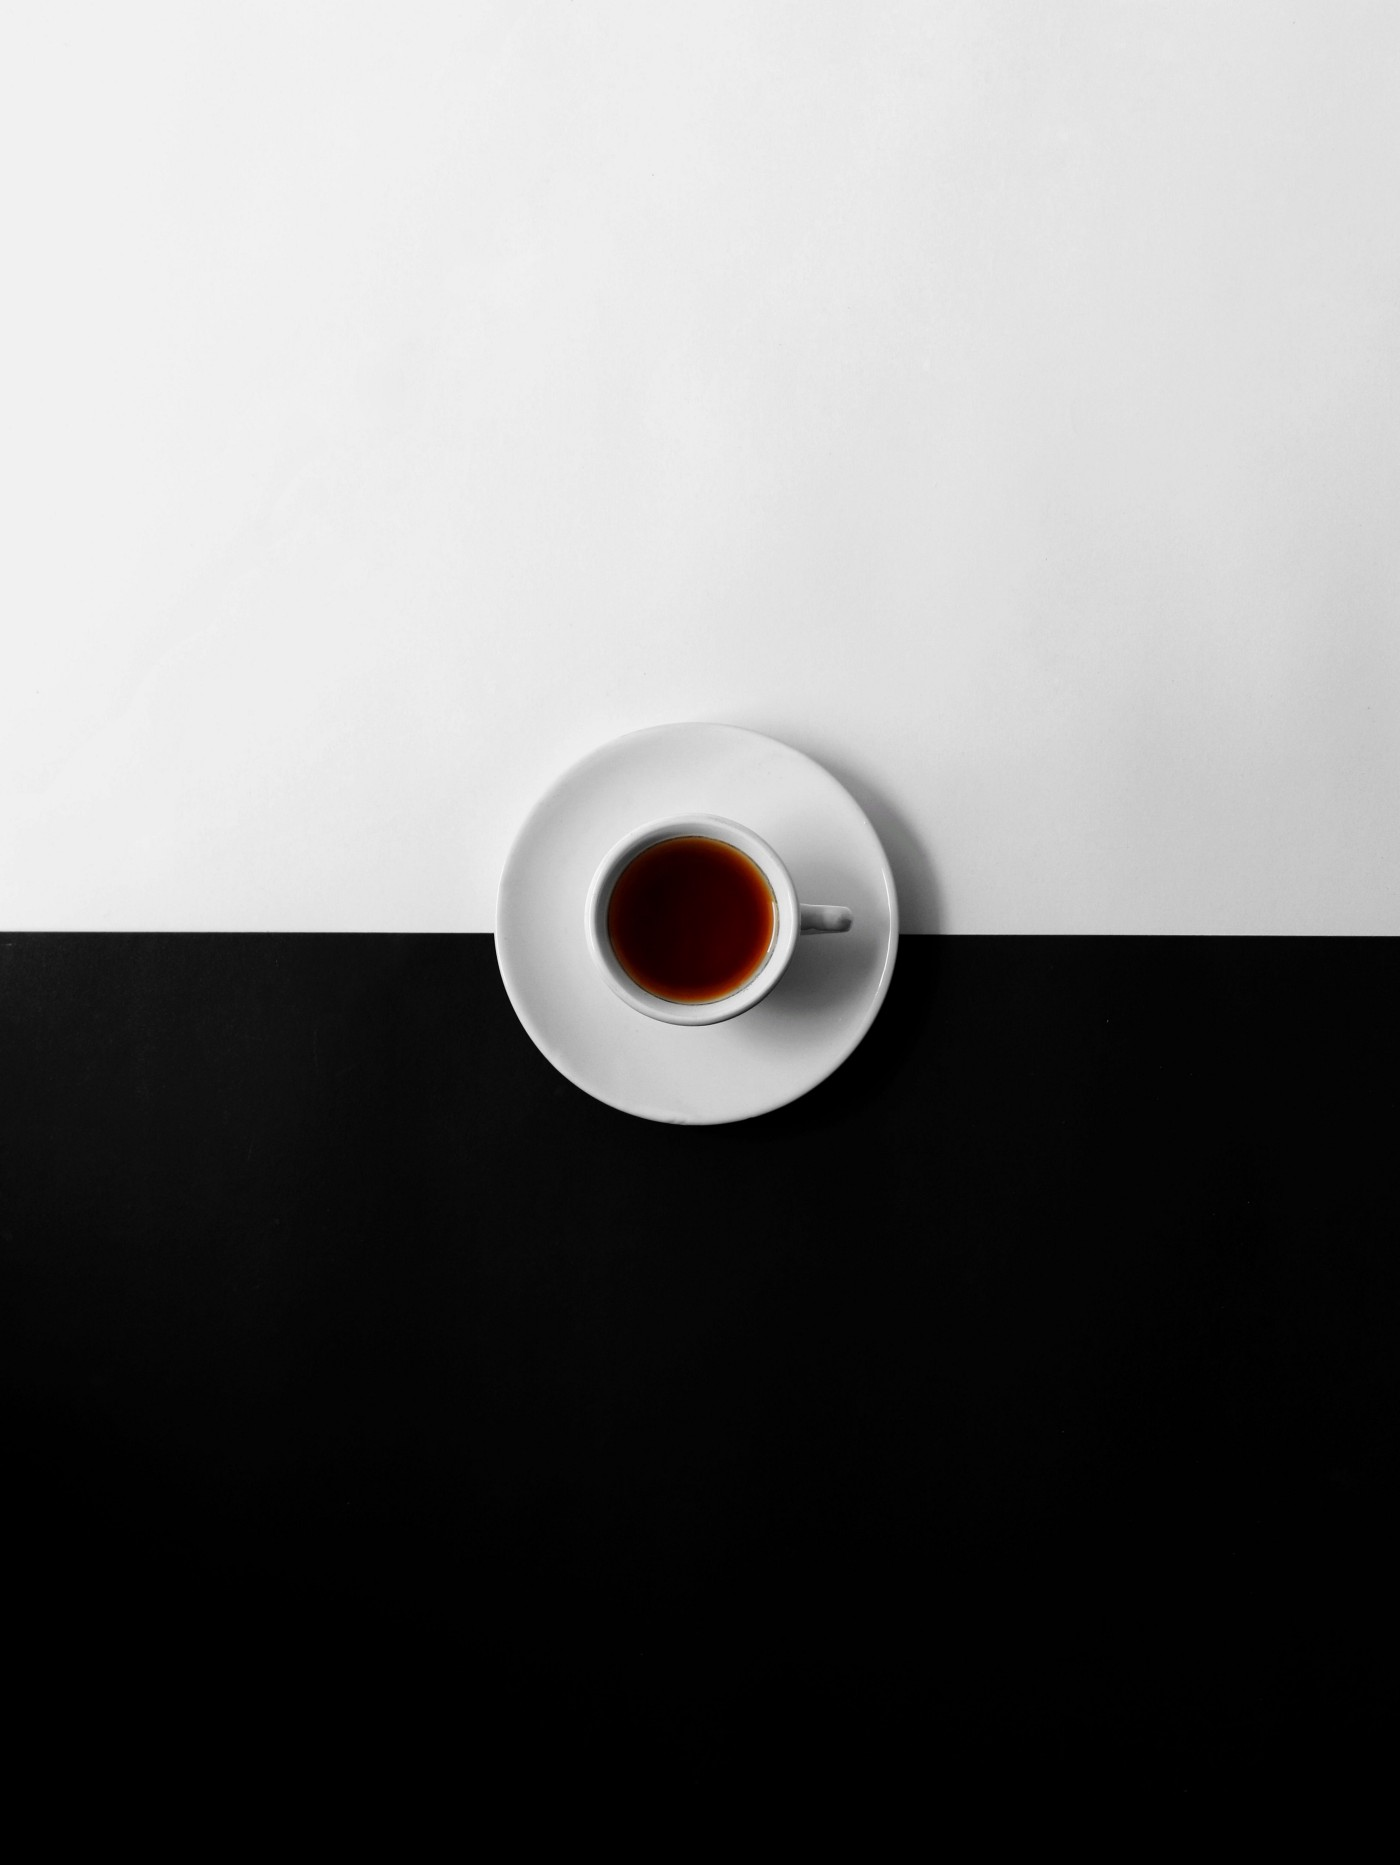 Image of cup of tea on black and white background. Photo by Mukul Wadhwa on Unsplash